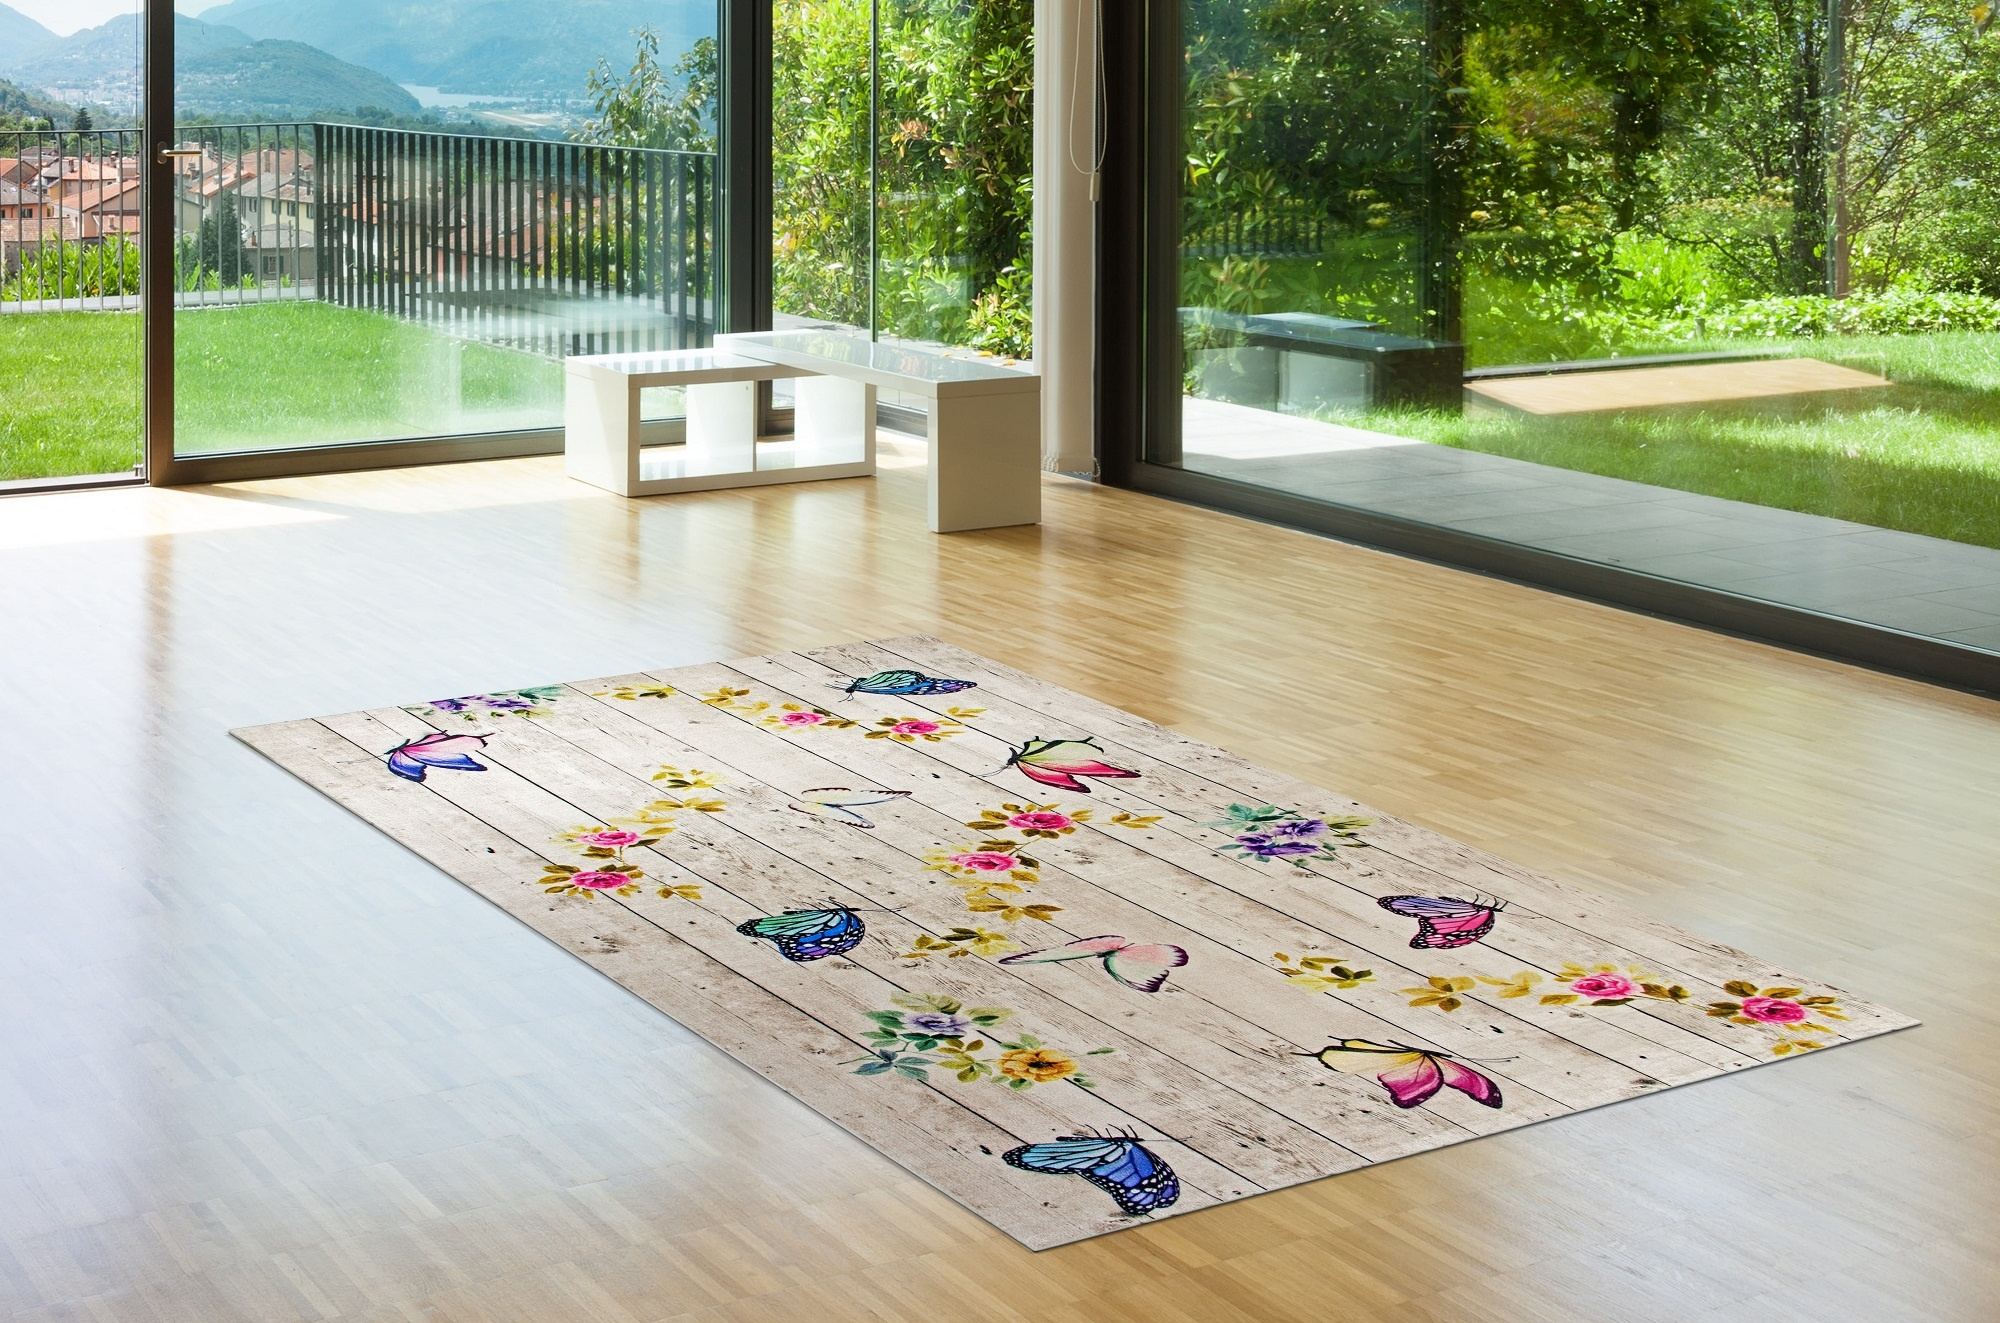 Covor Butterflowers 5016 Multicolor, 50 x 80 cm imagine